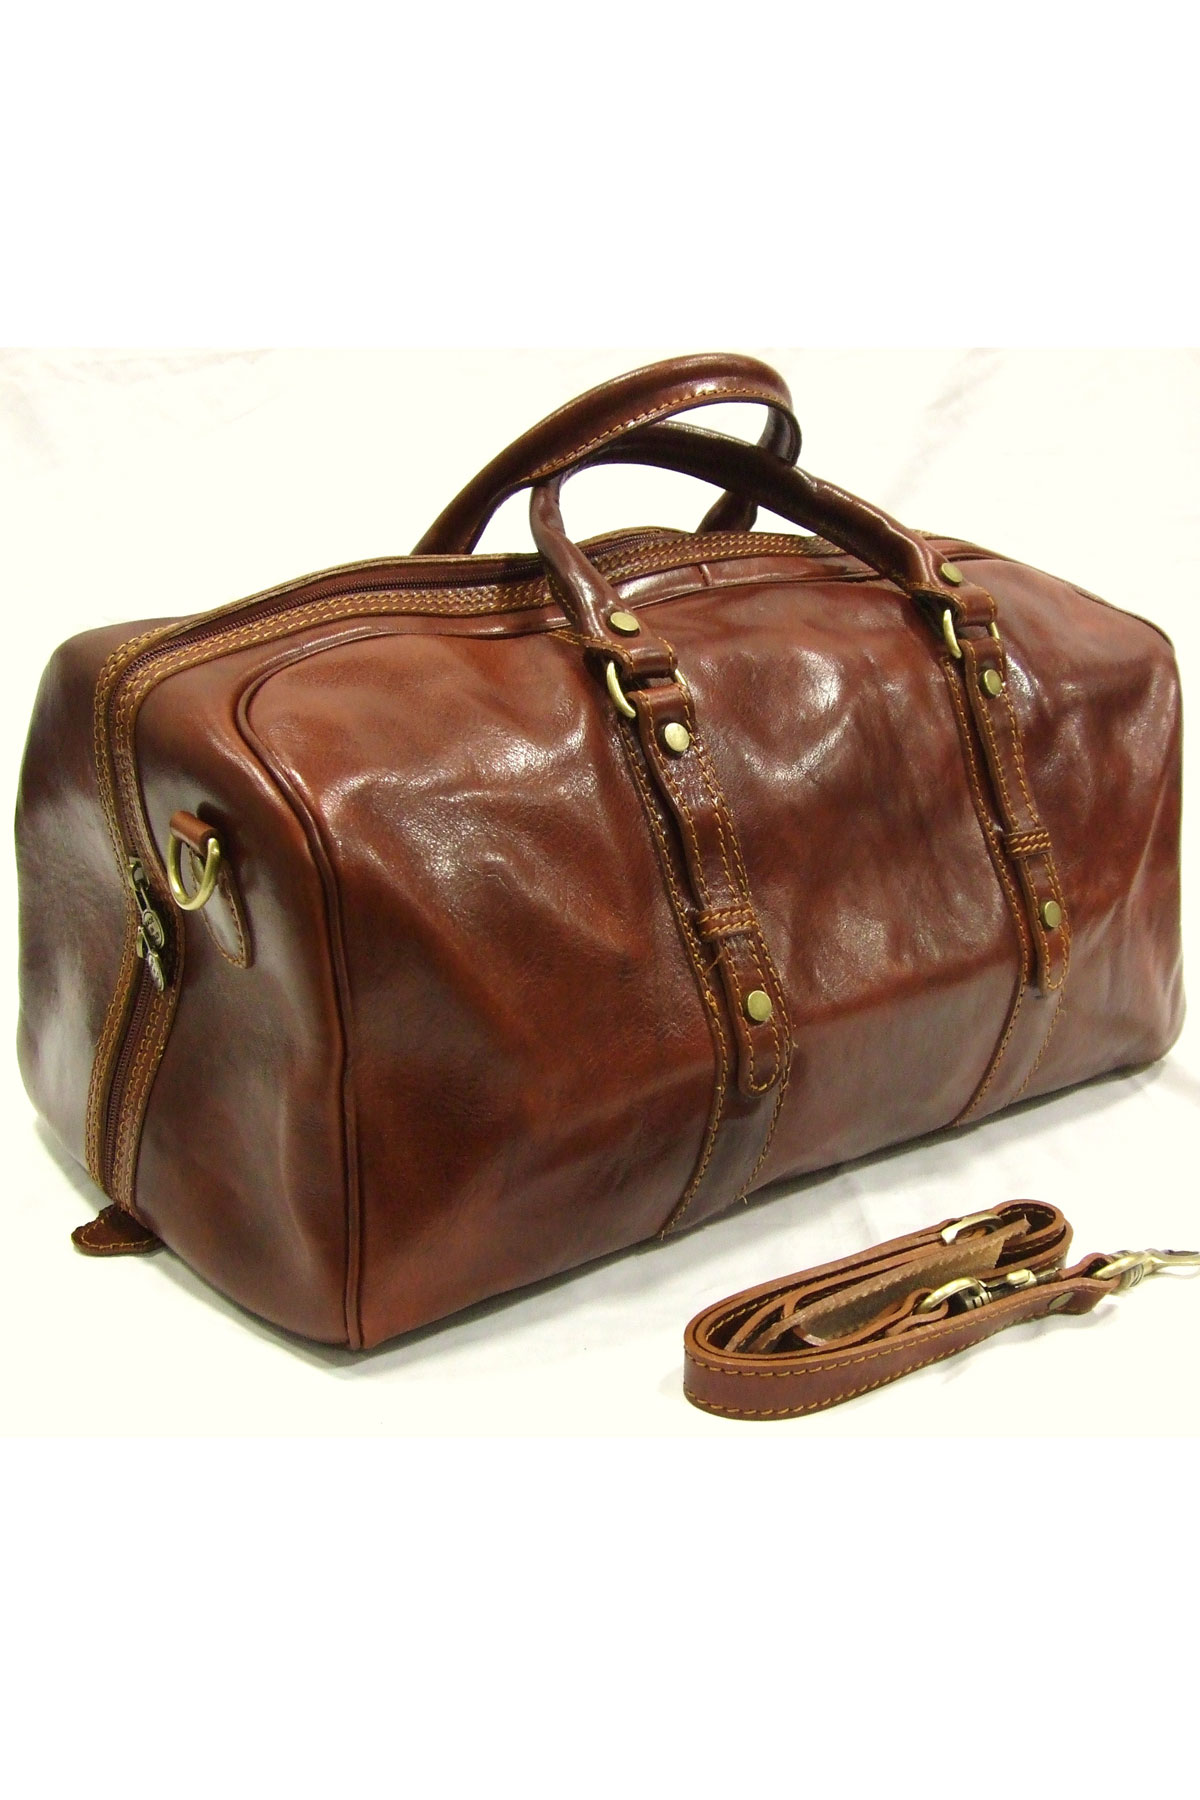 Italian Leather Travel Bag by Woodland Leather